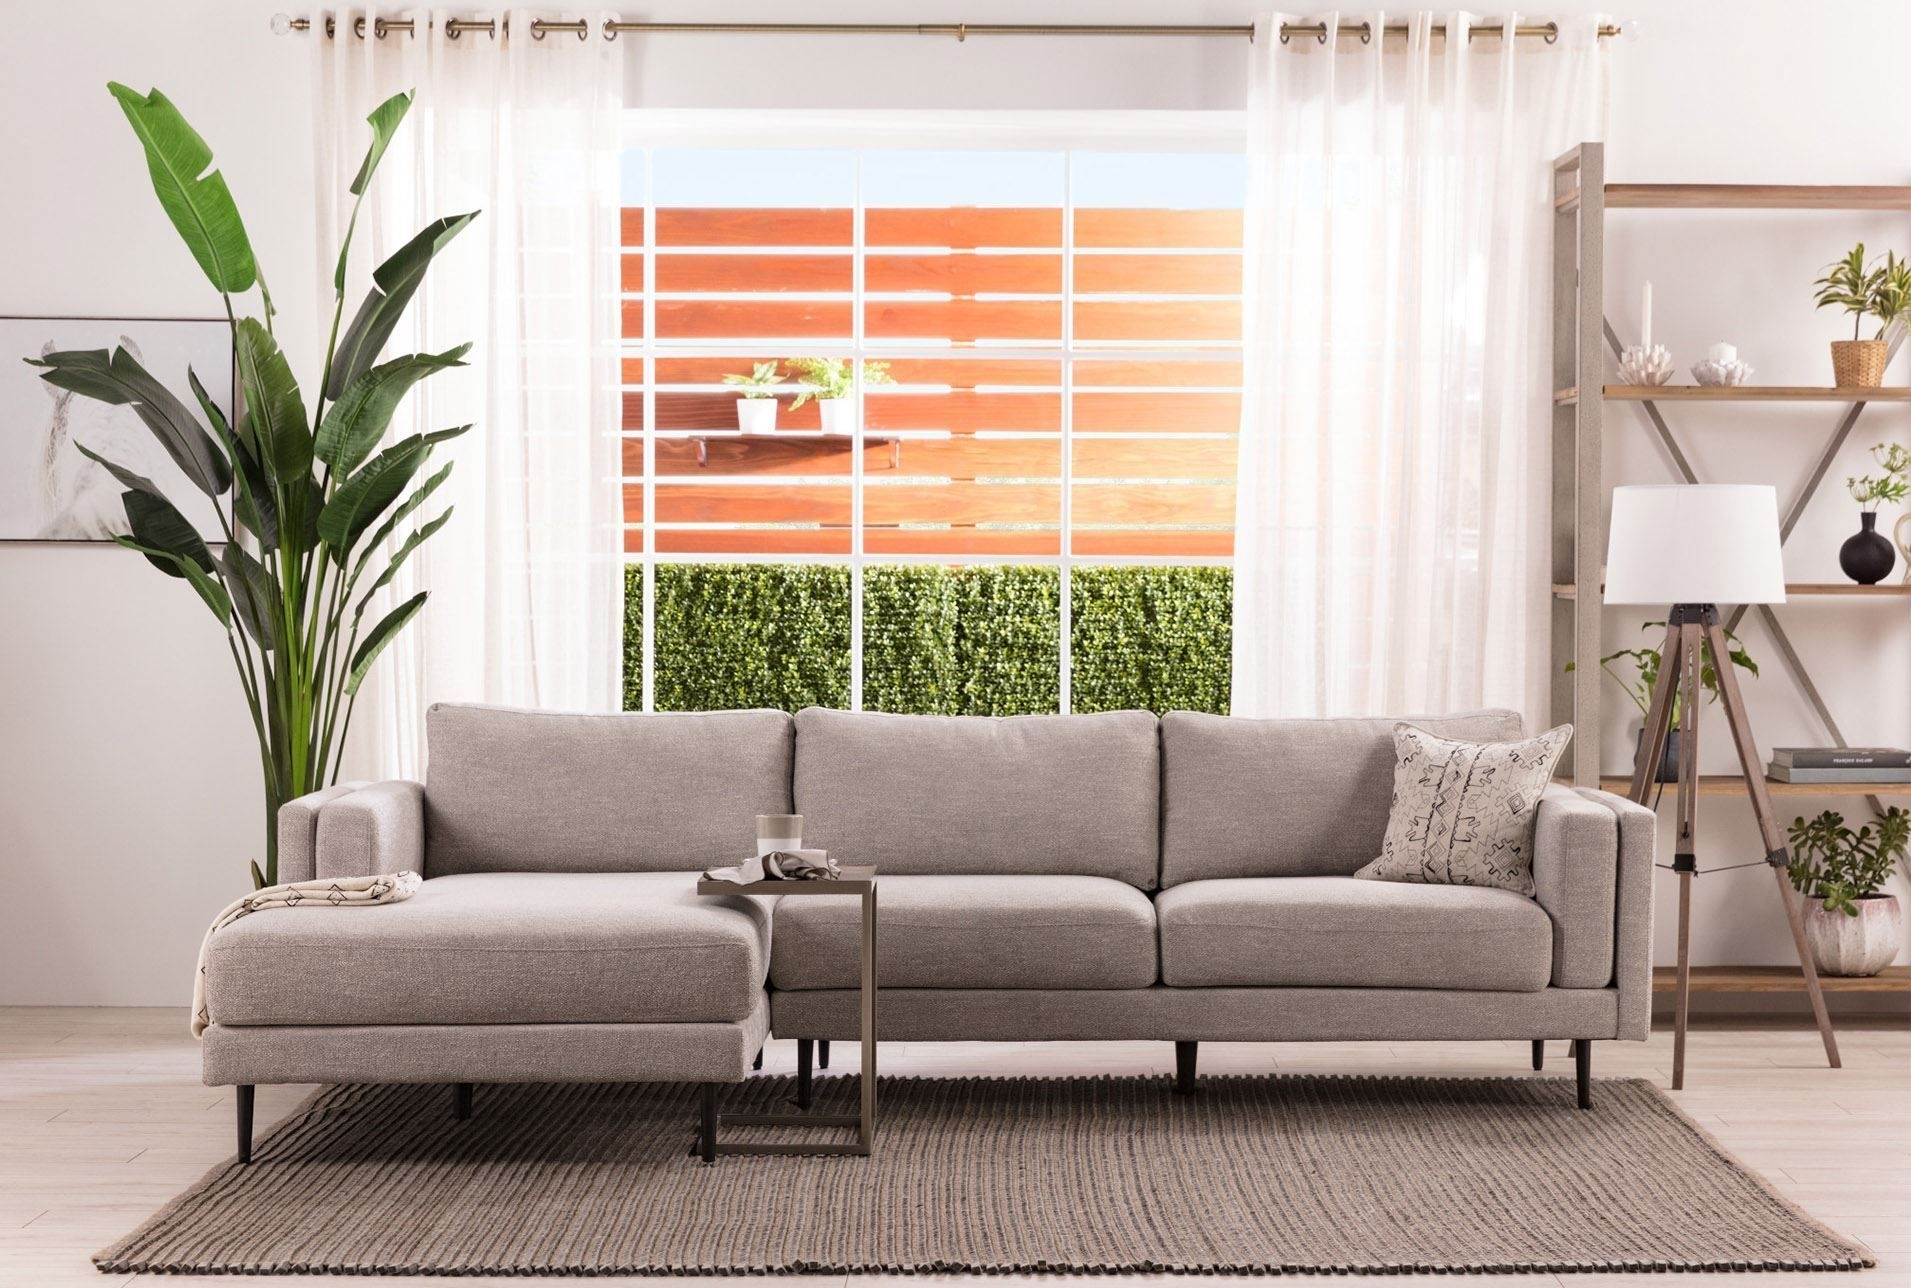 Aquarius Light Grey 2 Piece Sectional W/laf Chaise | Home with regard to Aquarius Light Grey 2 Piece Sectionals With Raf Chaise (Image 8 of 30)